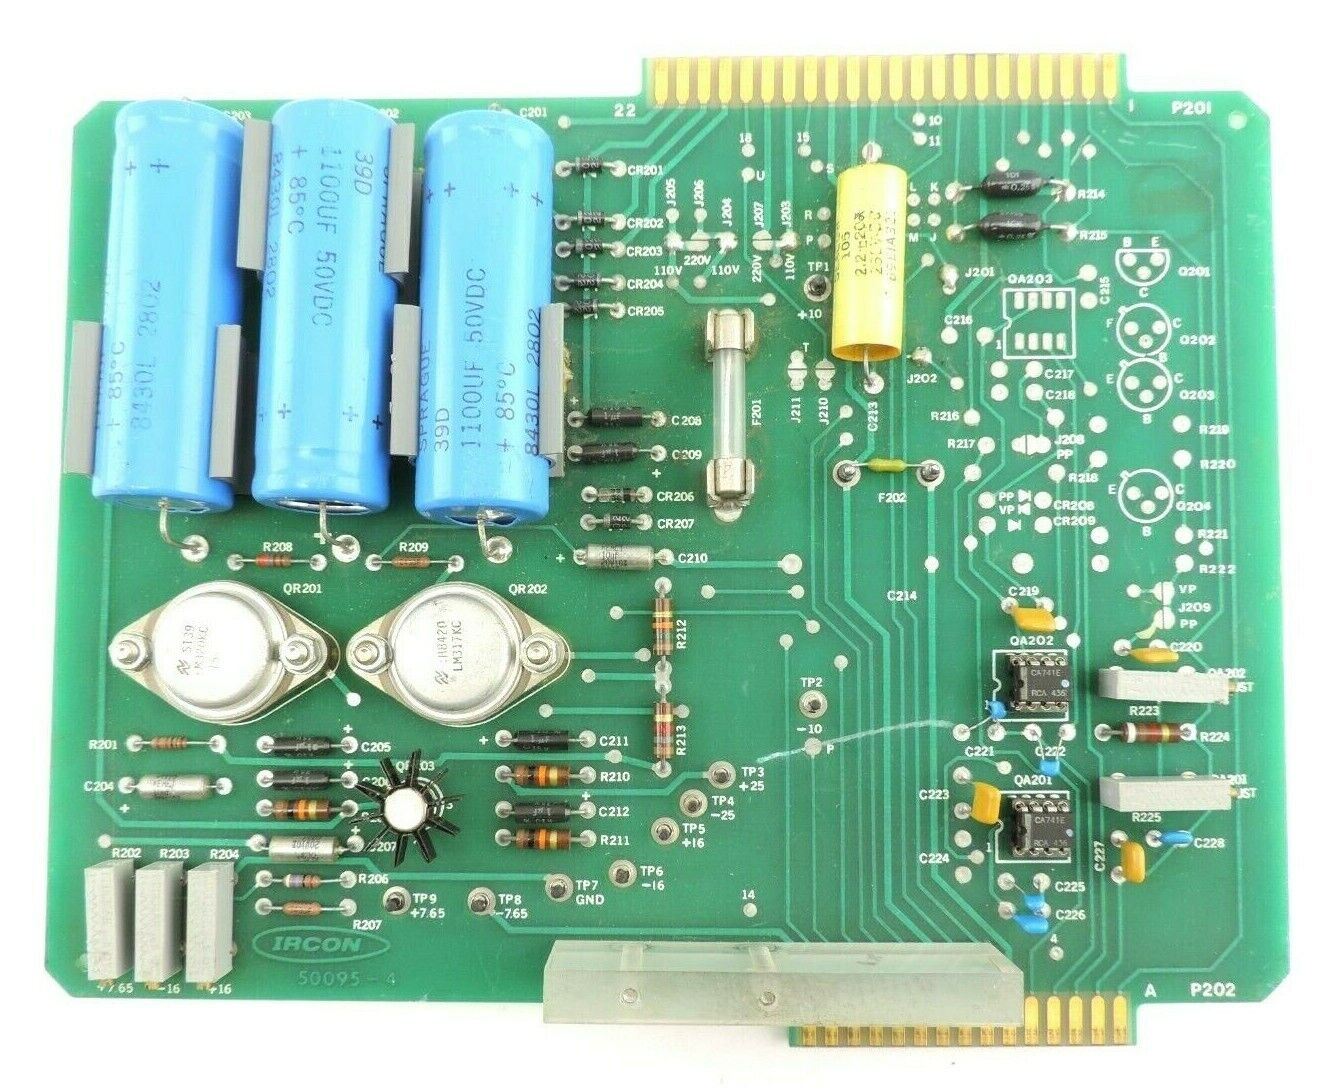 IRCON 50095-4 Amplifier Powwer Board Printed Circuit Board